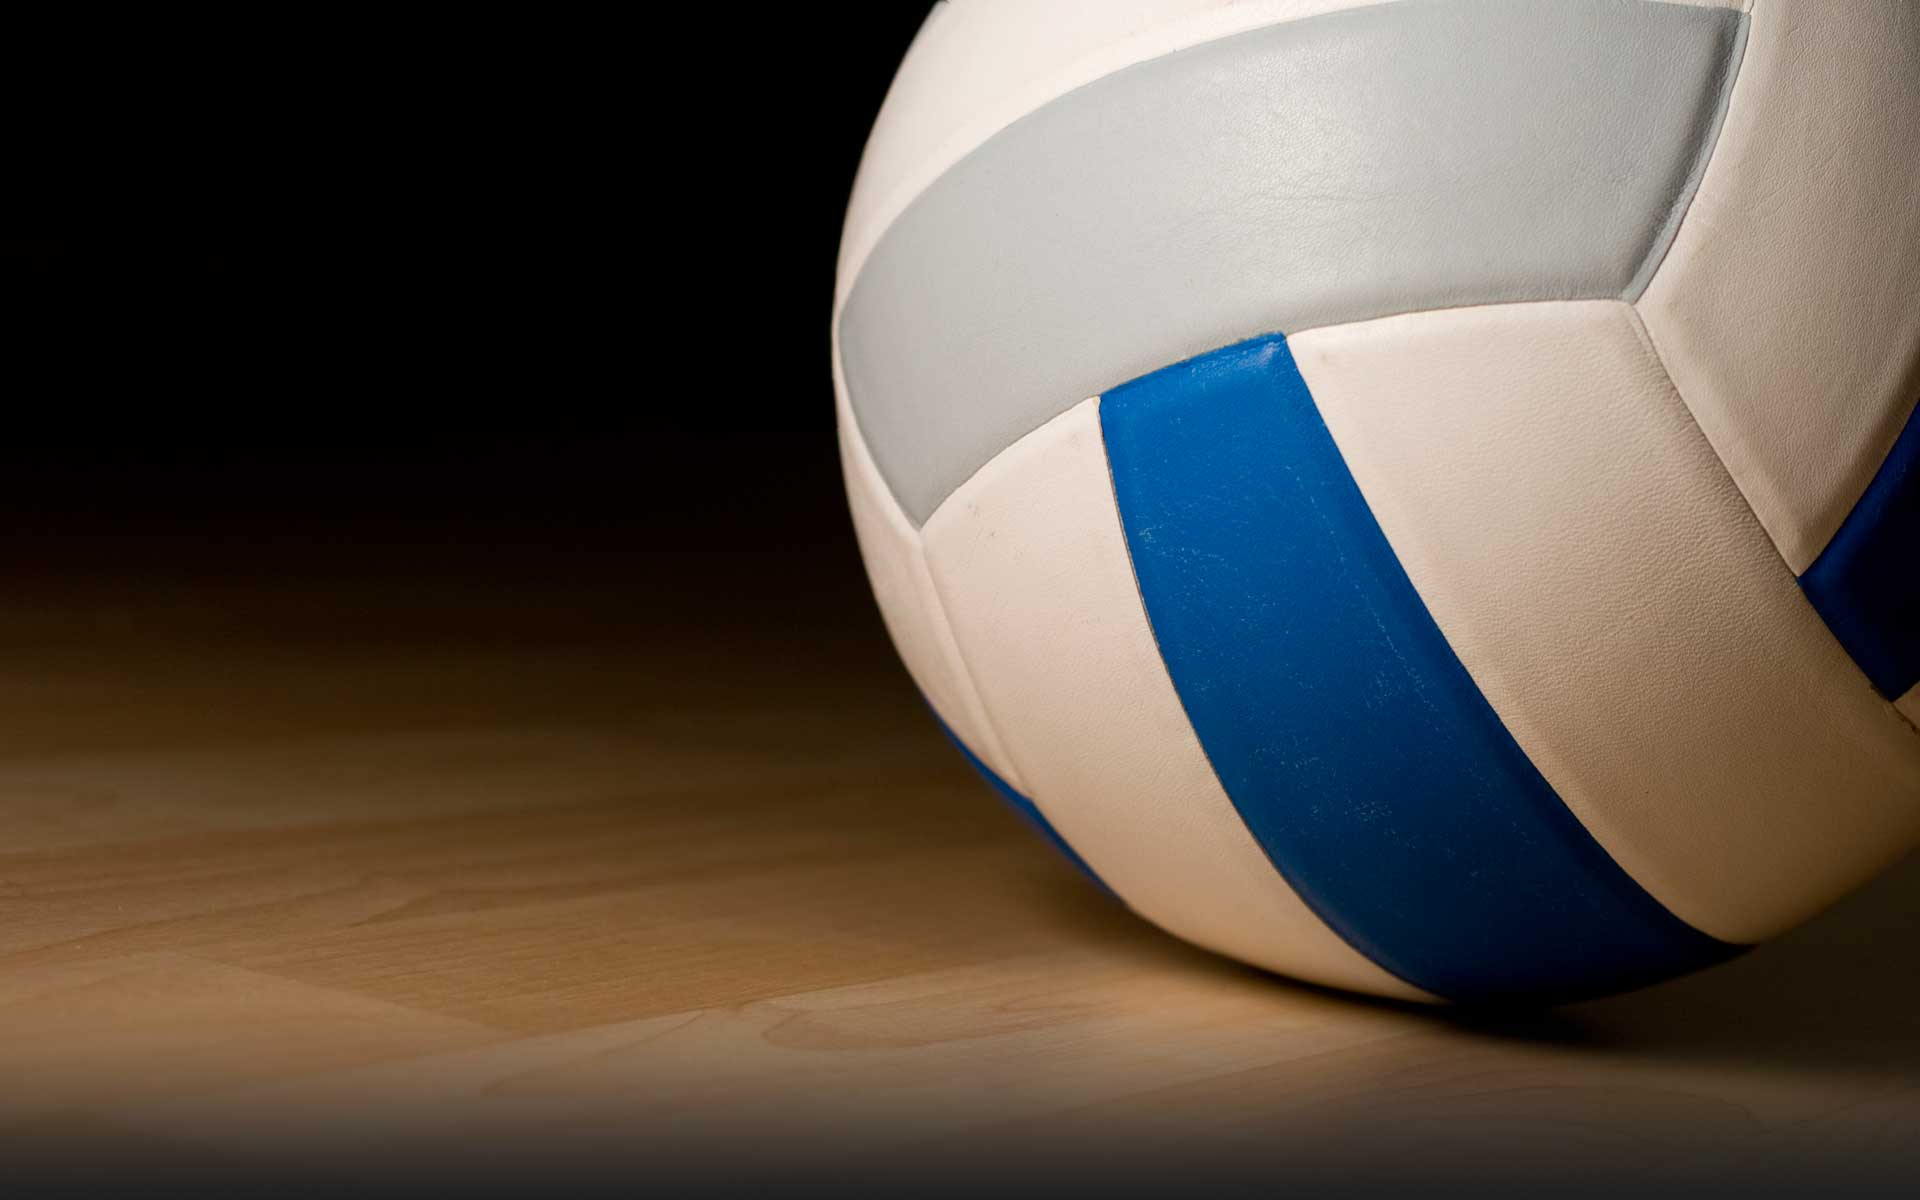 volleyball-photo-gallery-hd-wallpaper